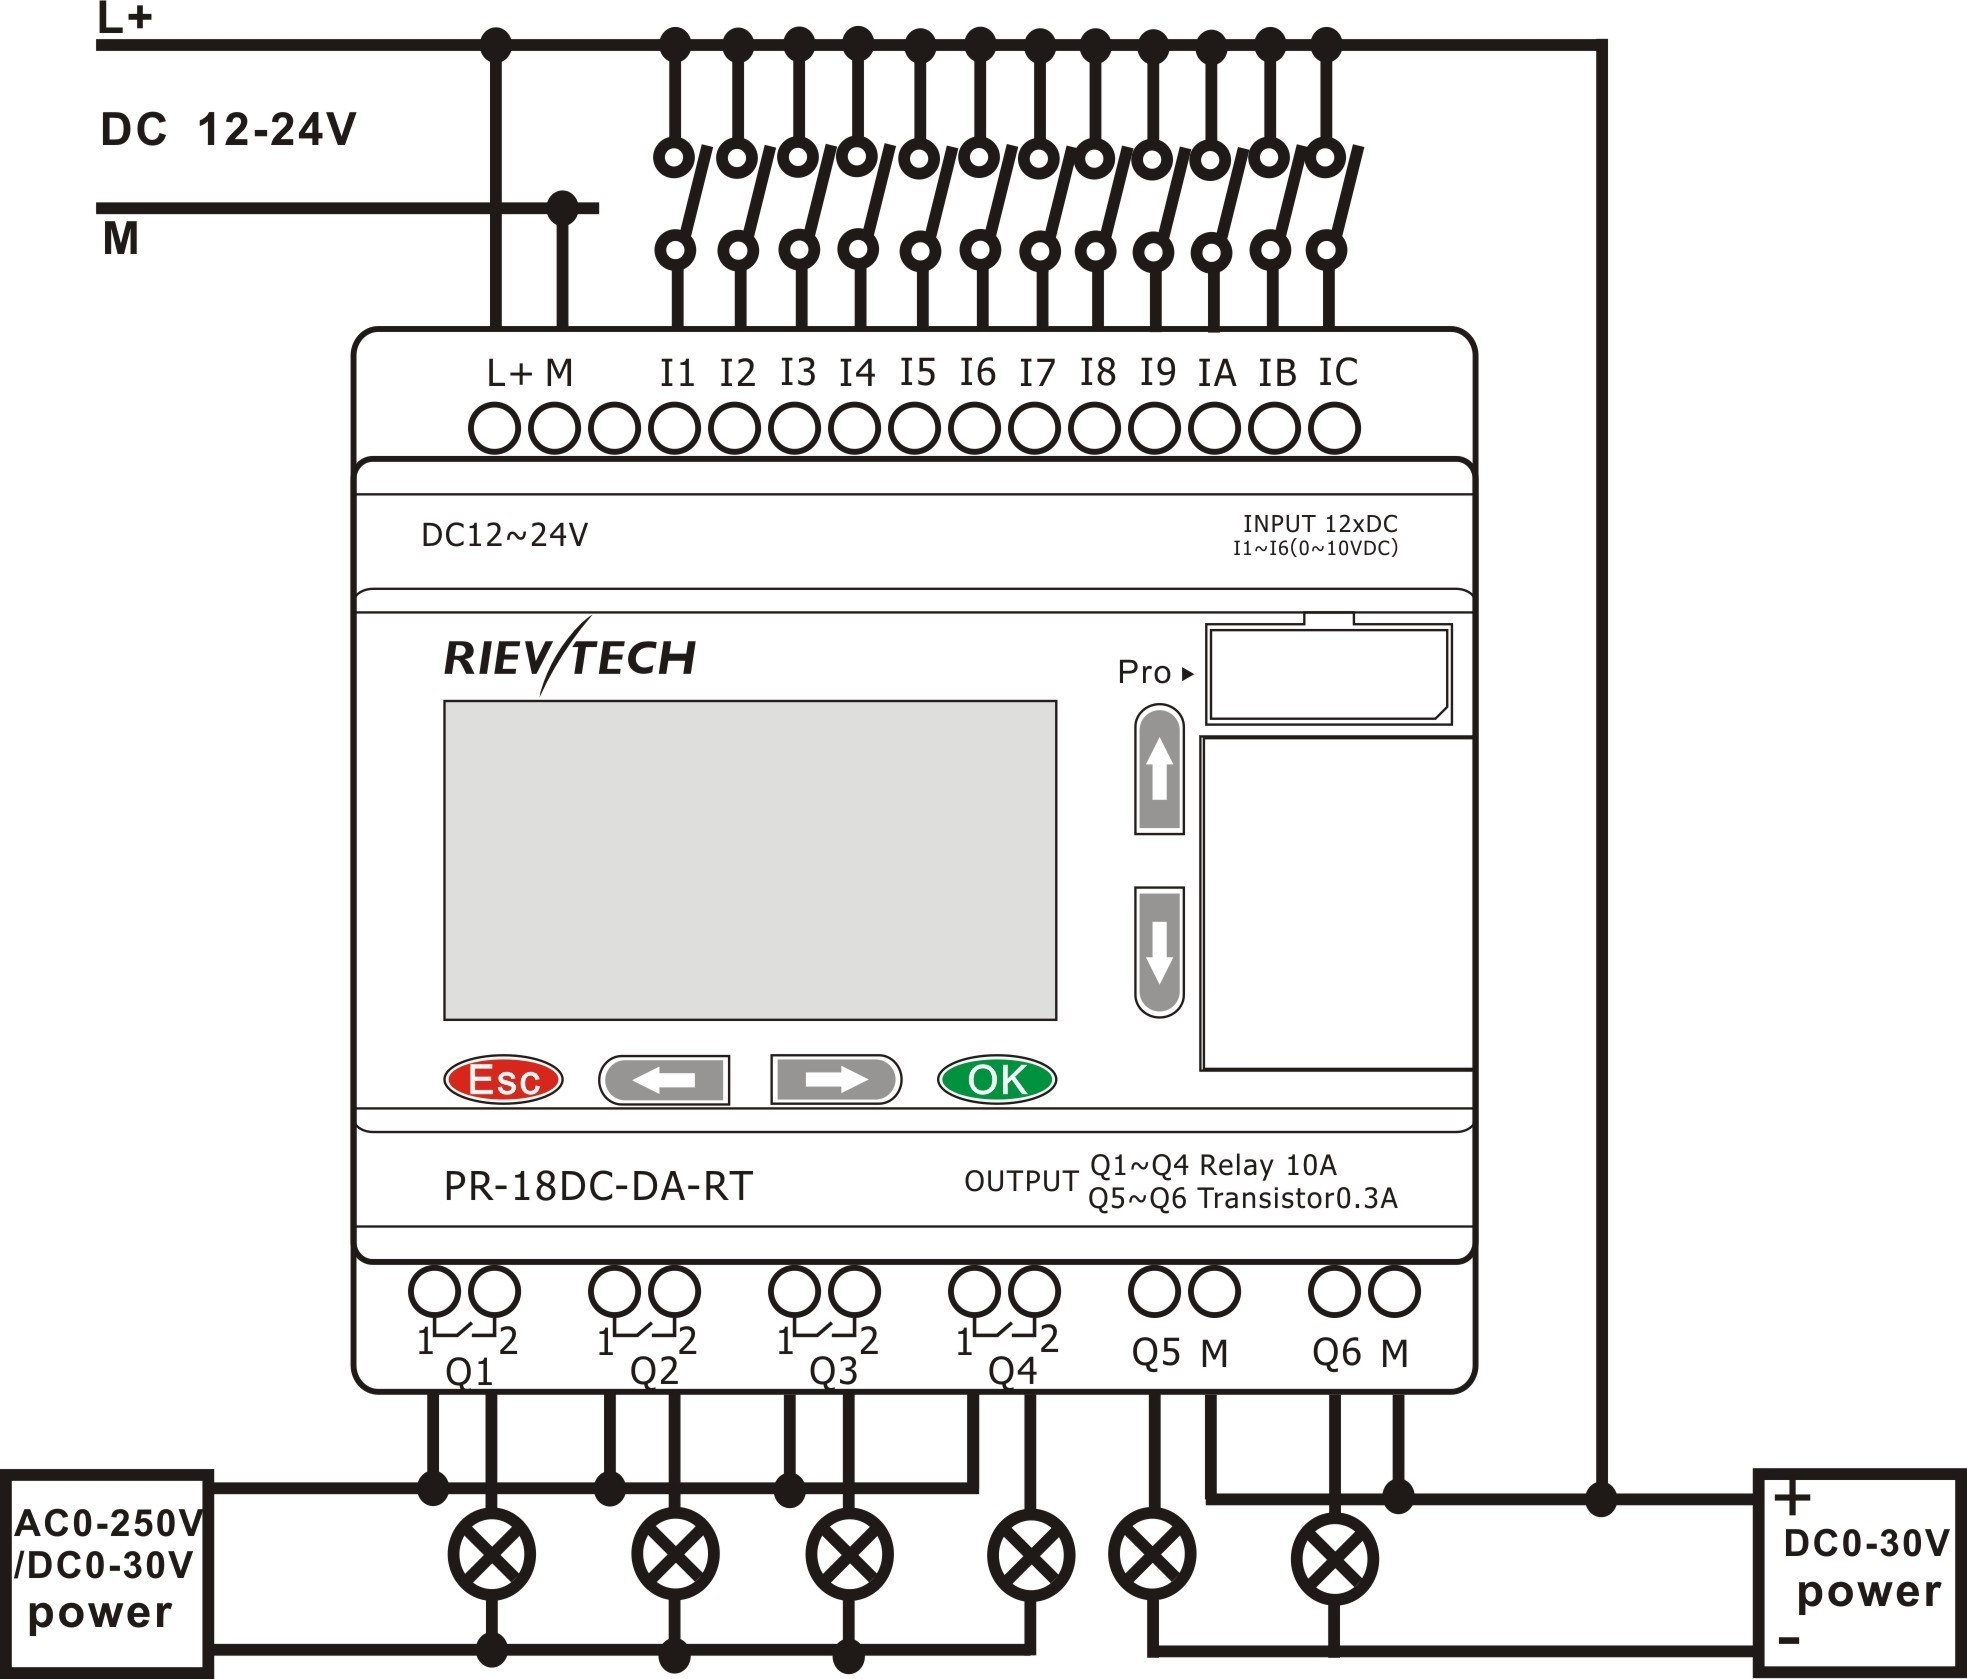 plc wiring diagram software Collection-Plc Wiring Diagram software Gambar Wiring Diagram Relay Best Omron Plc Wiring Diagram Omron Plc 12-l